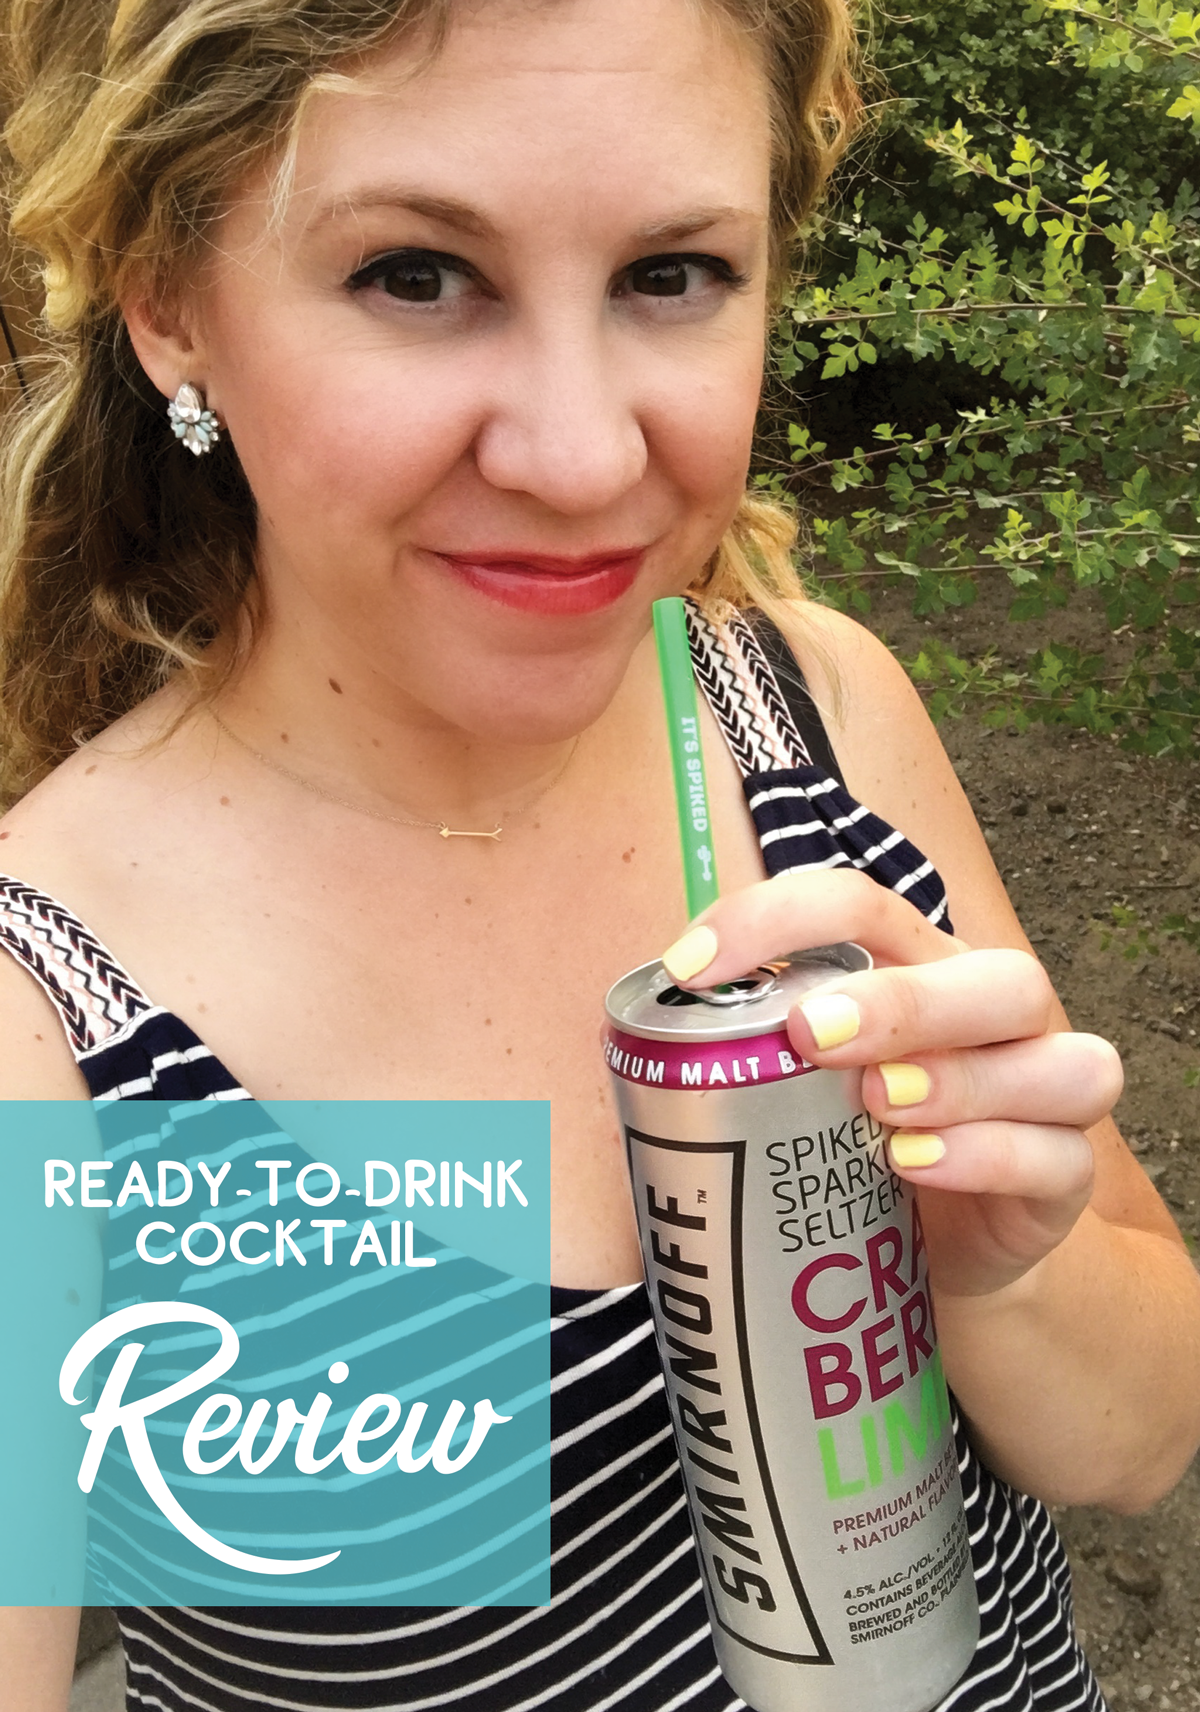 Canned cocktail review of Smirnoff Spiked Sparkling Seltzer